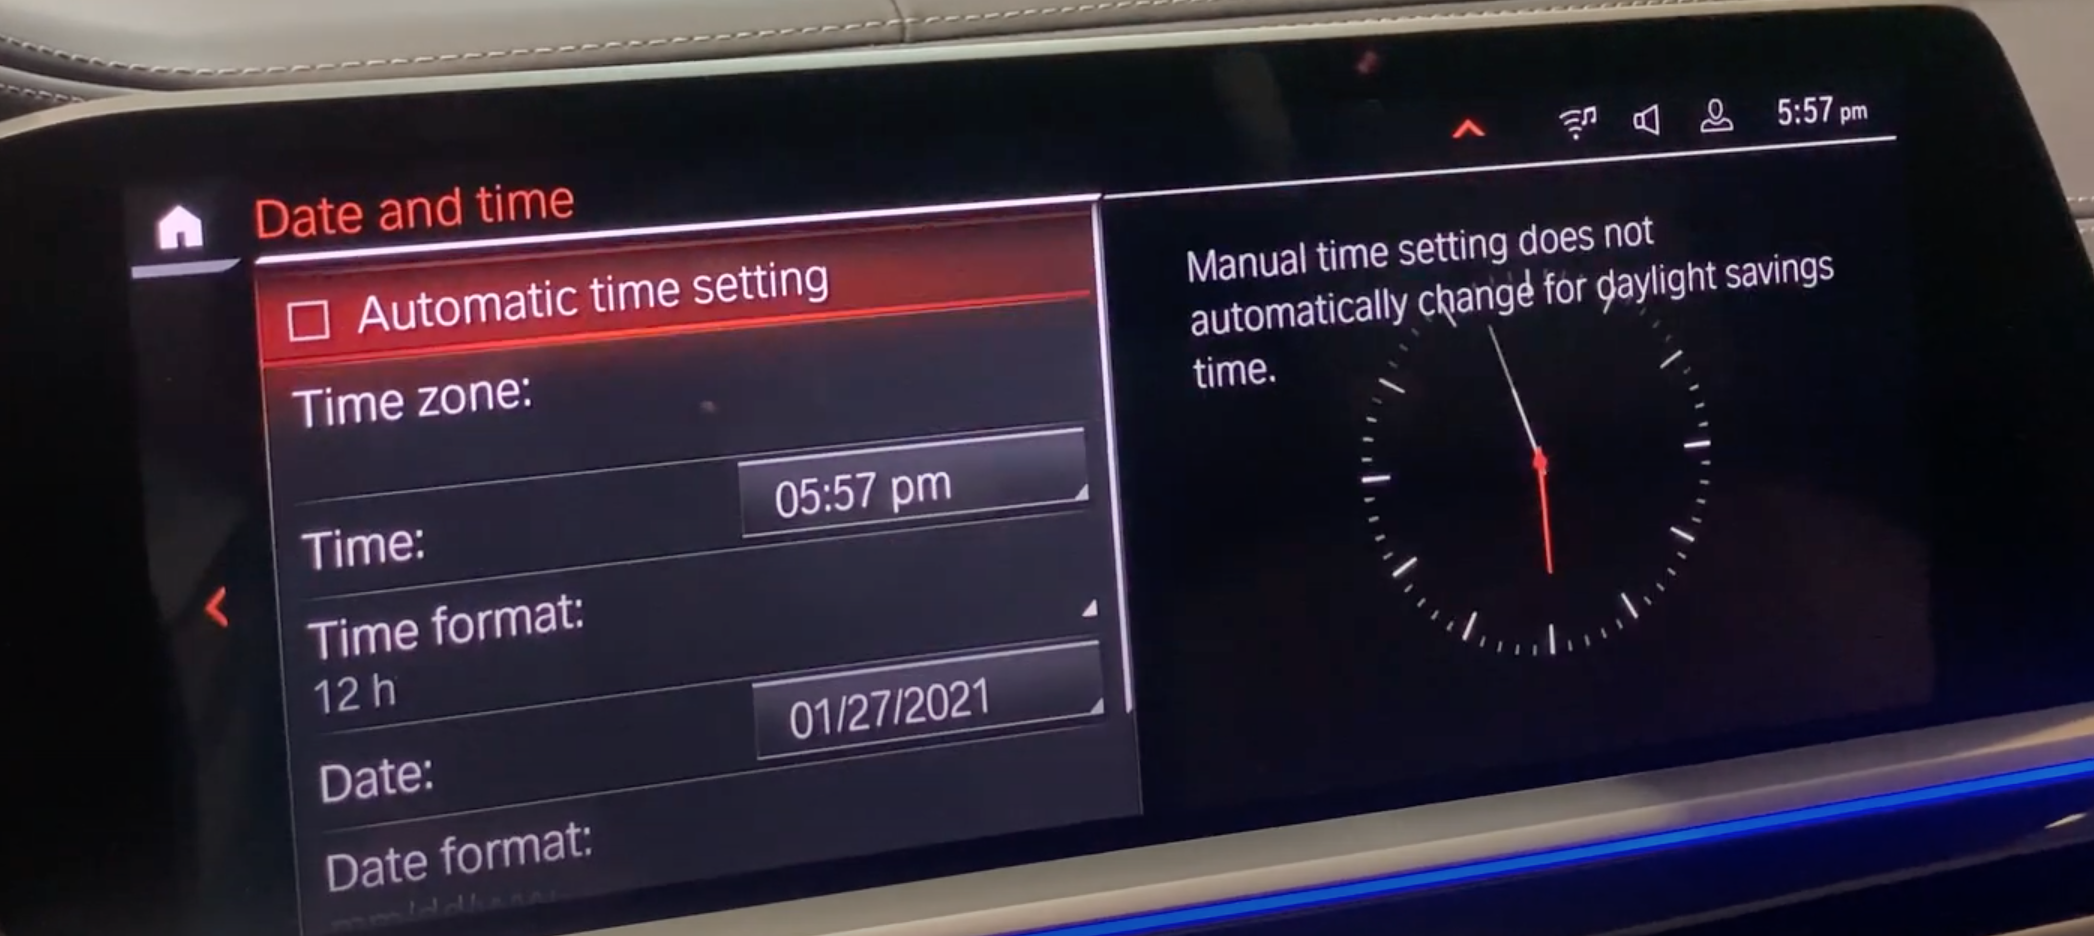 Date and time settings such as time zone and date format with an illustration of a clock on the right